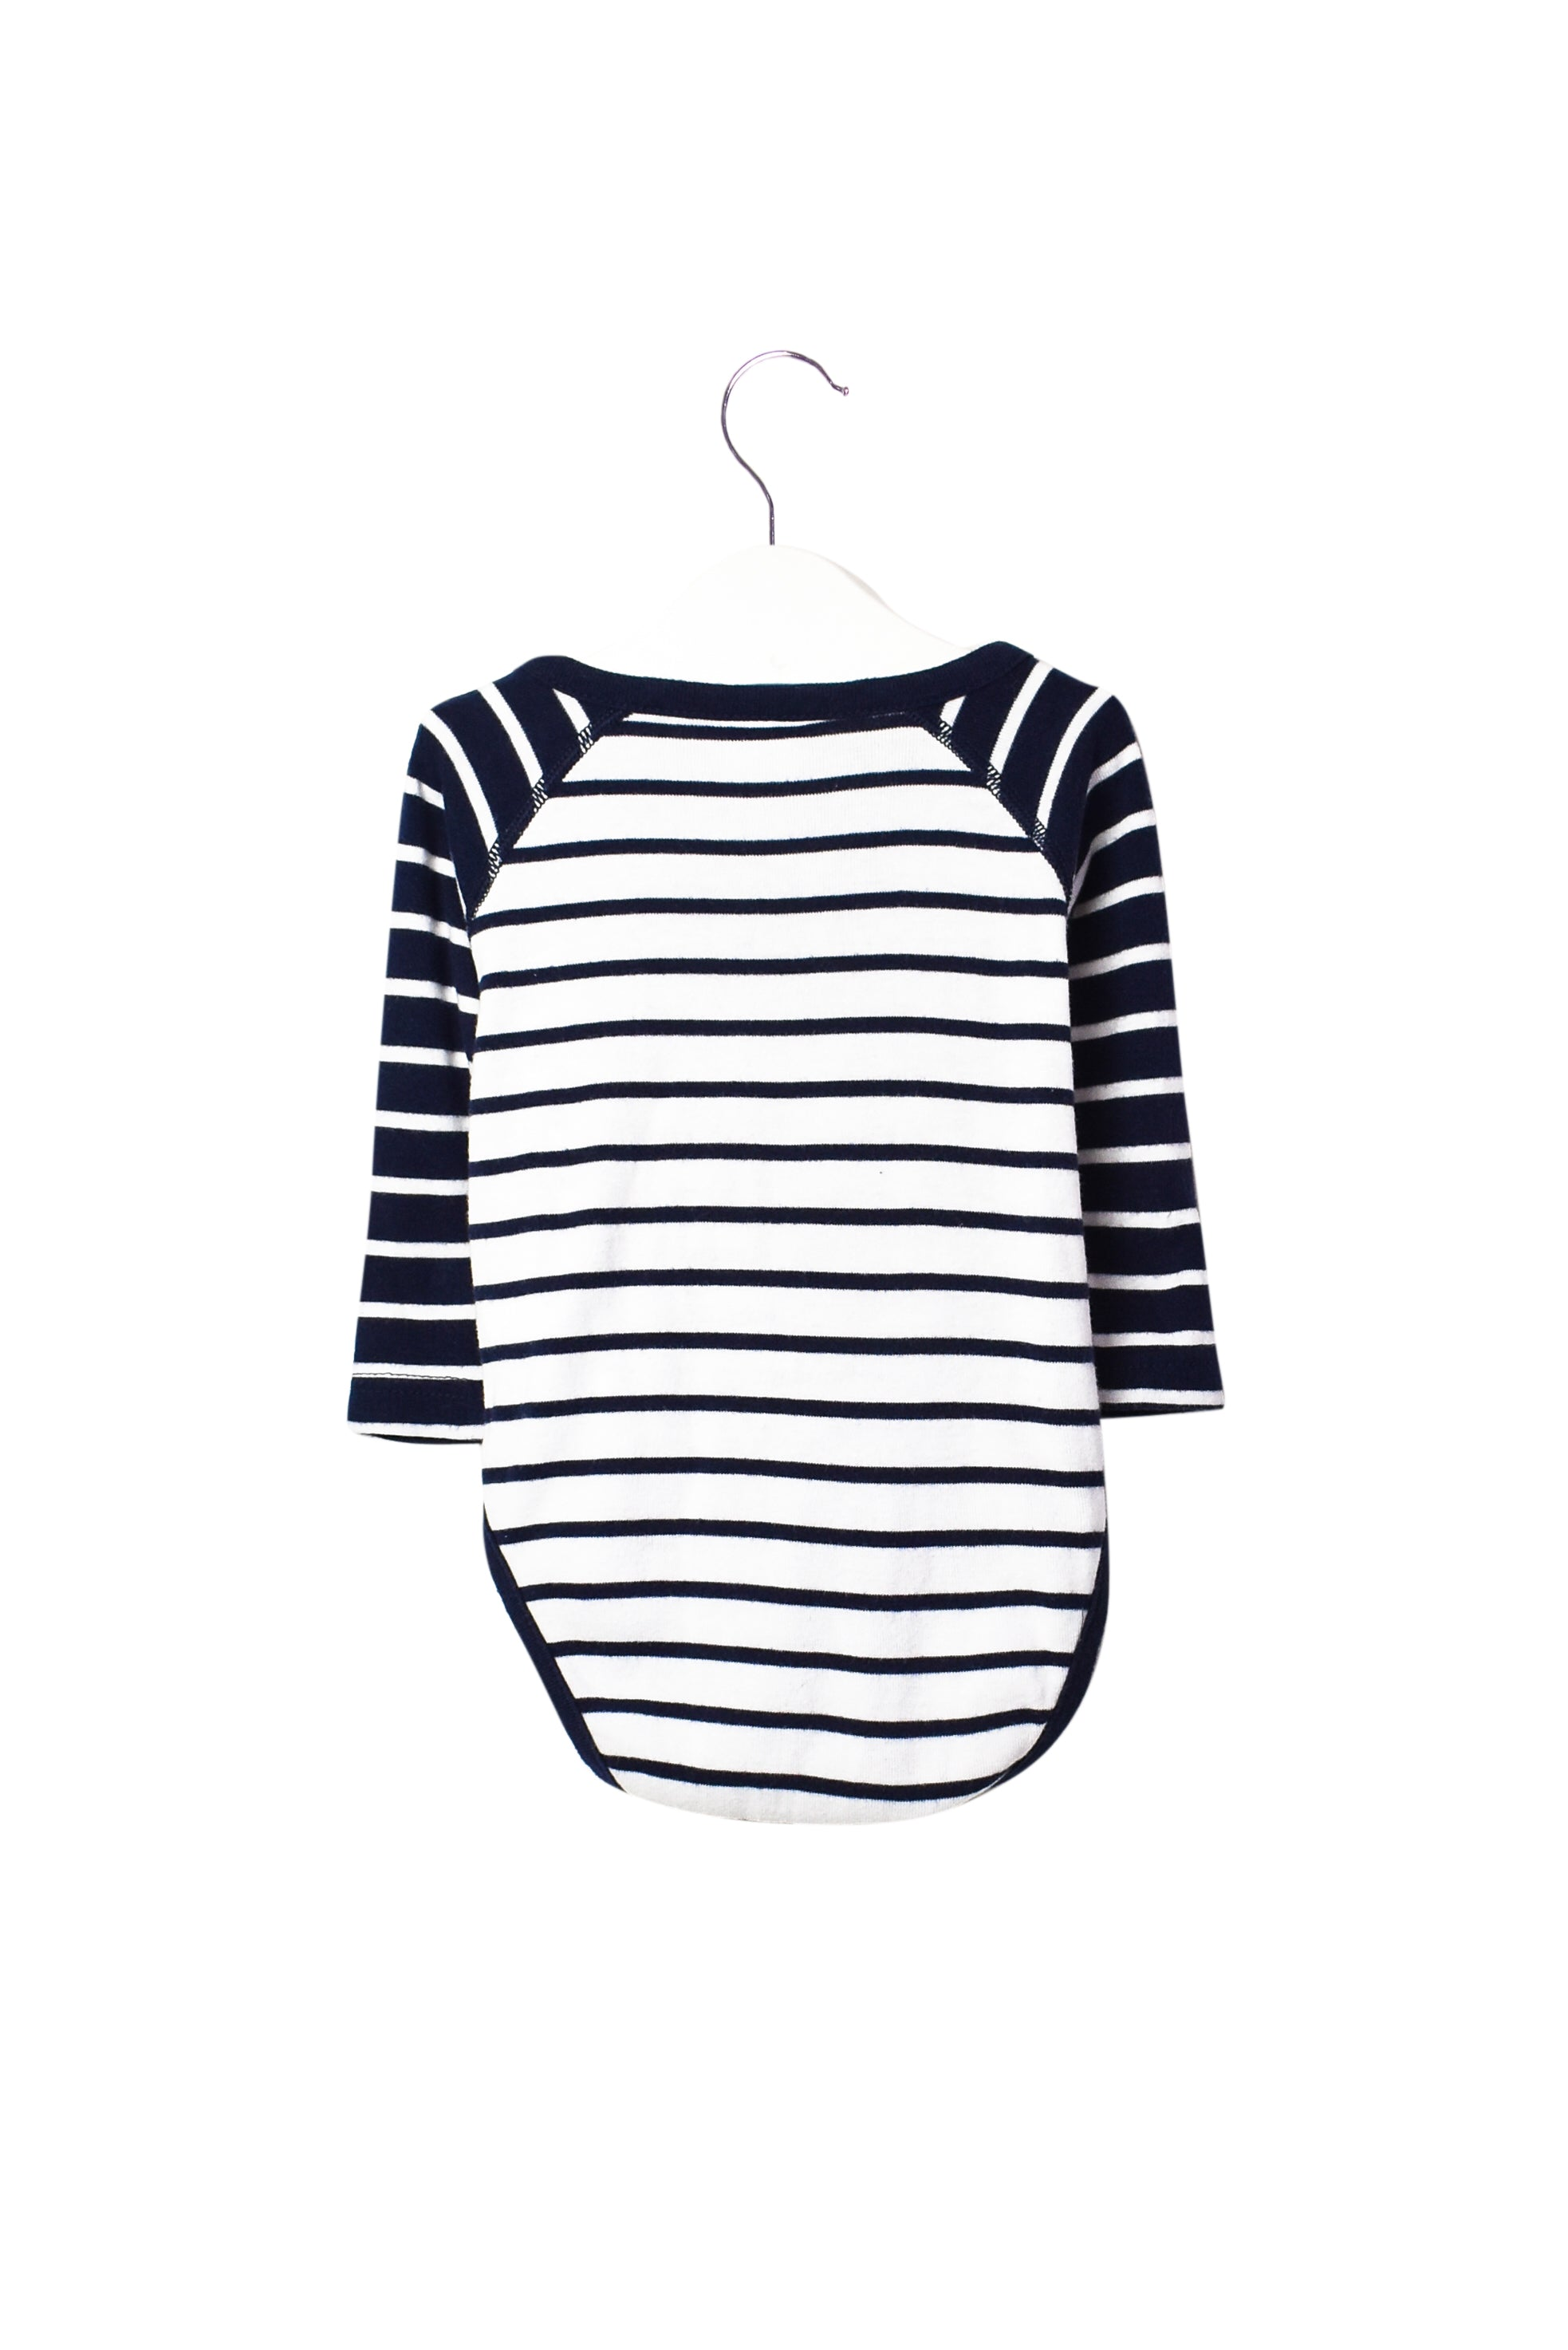 10006445 Hanna Andersson Baby~Bodysuit 3-6M at Retykle